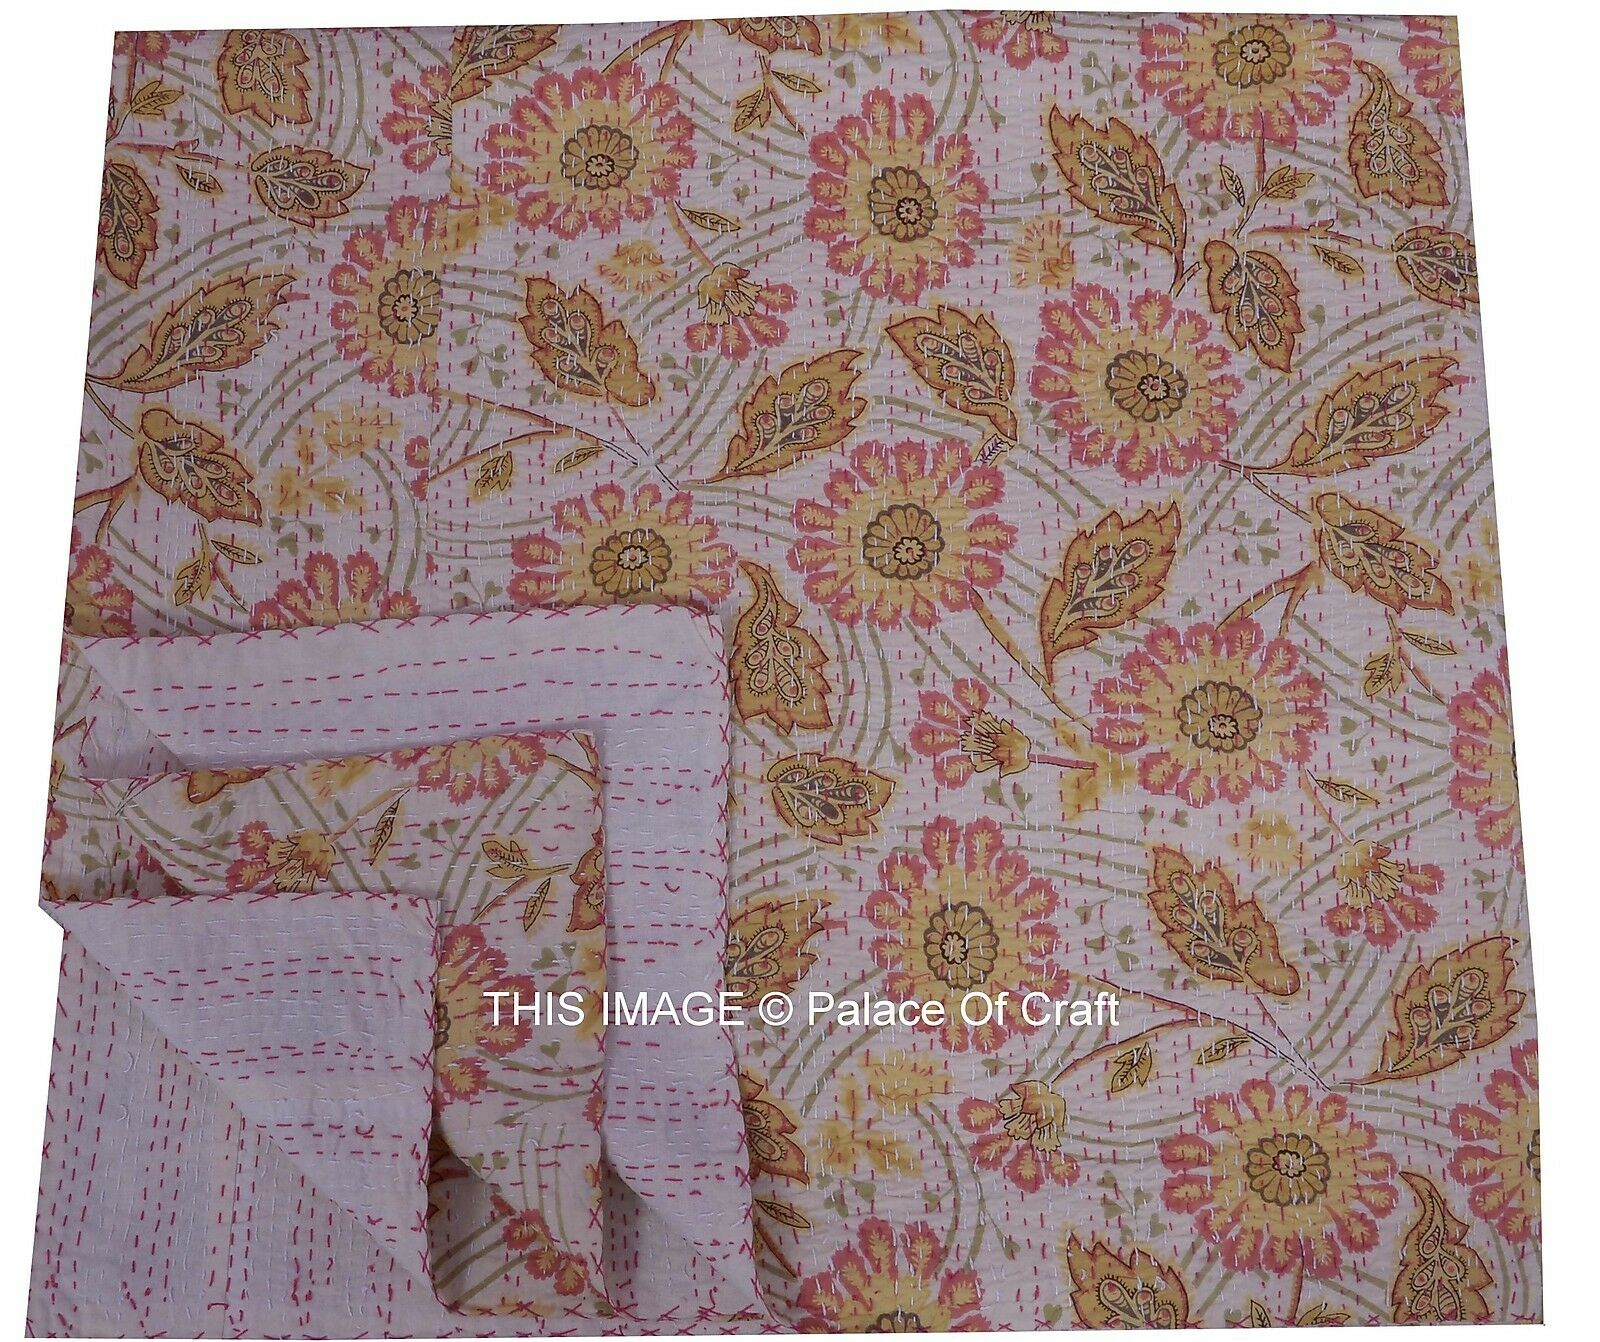 Indian Queen Size Cotton Reversible Kantha Quilt Floral Printed Ethnic Handmade